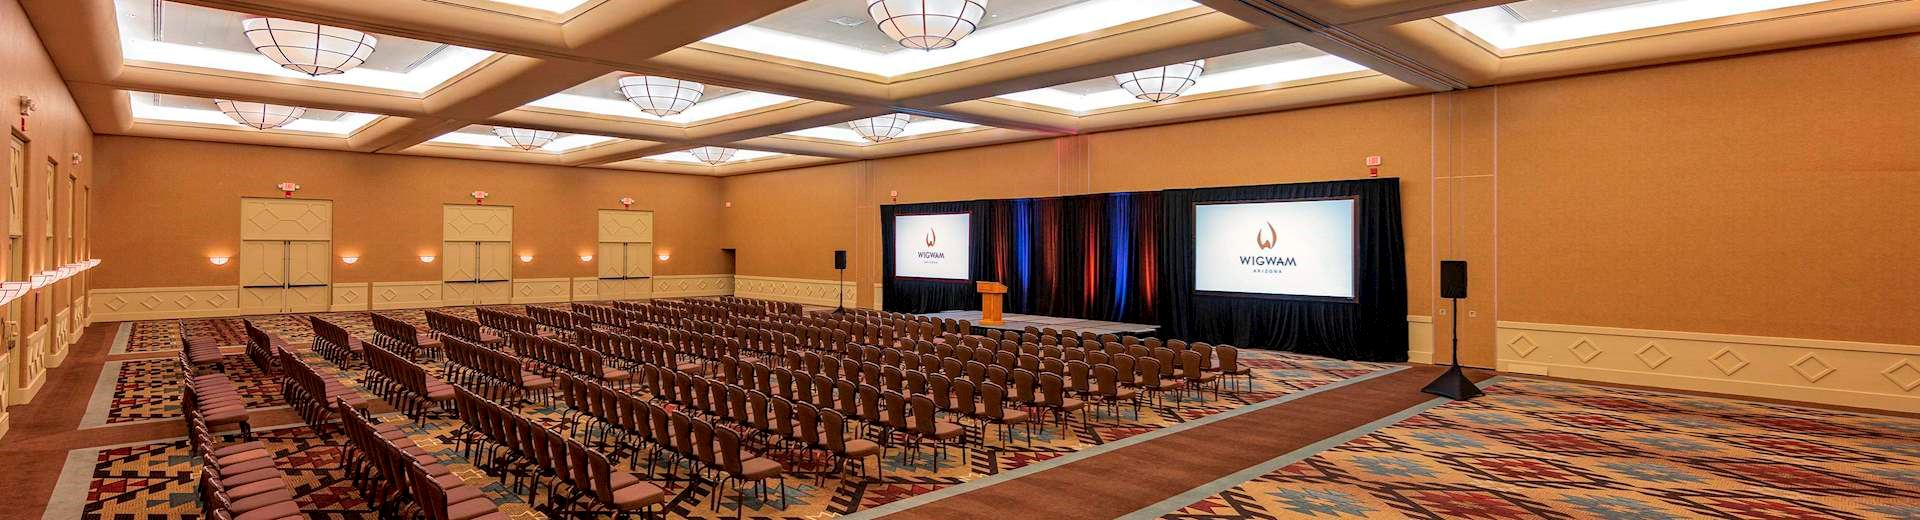 Meetings & Events at Litchfield Park Resort